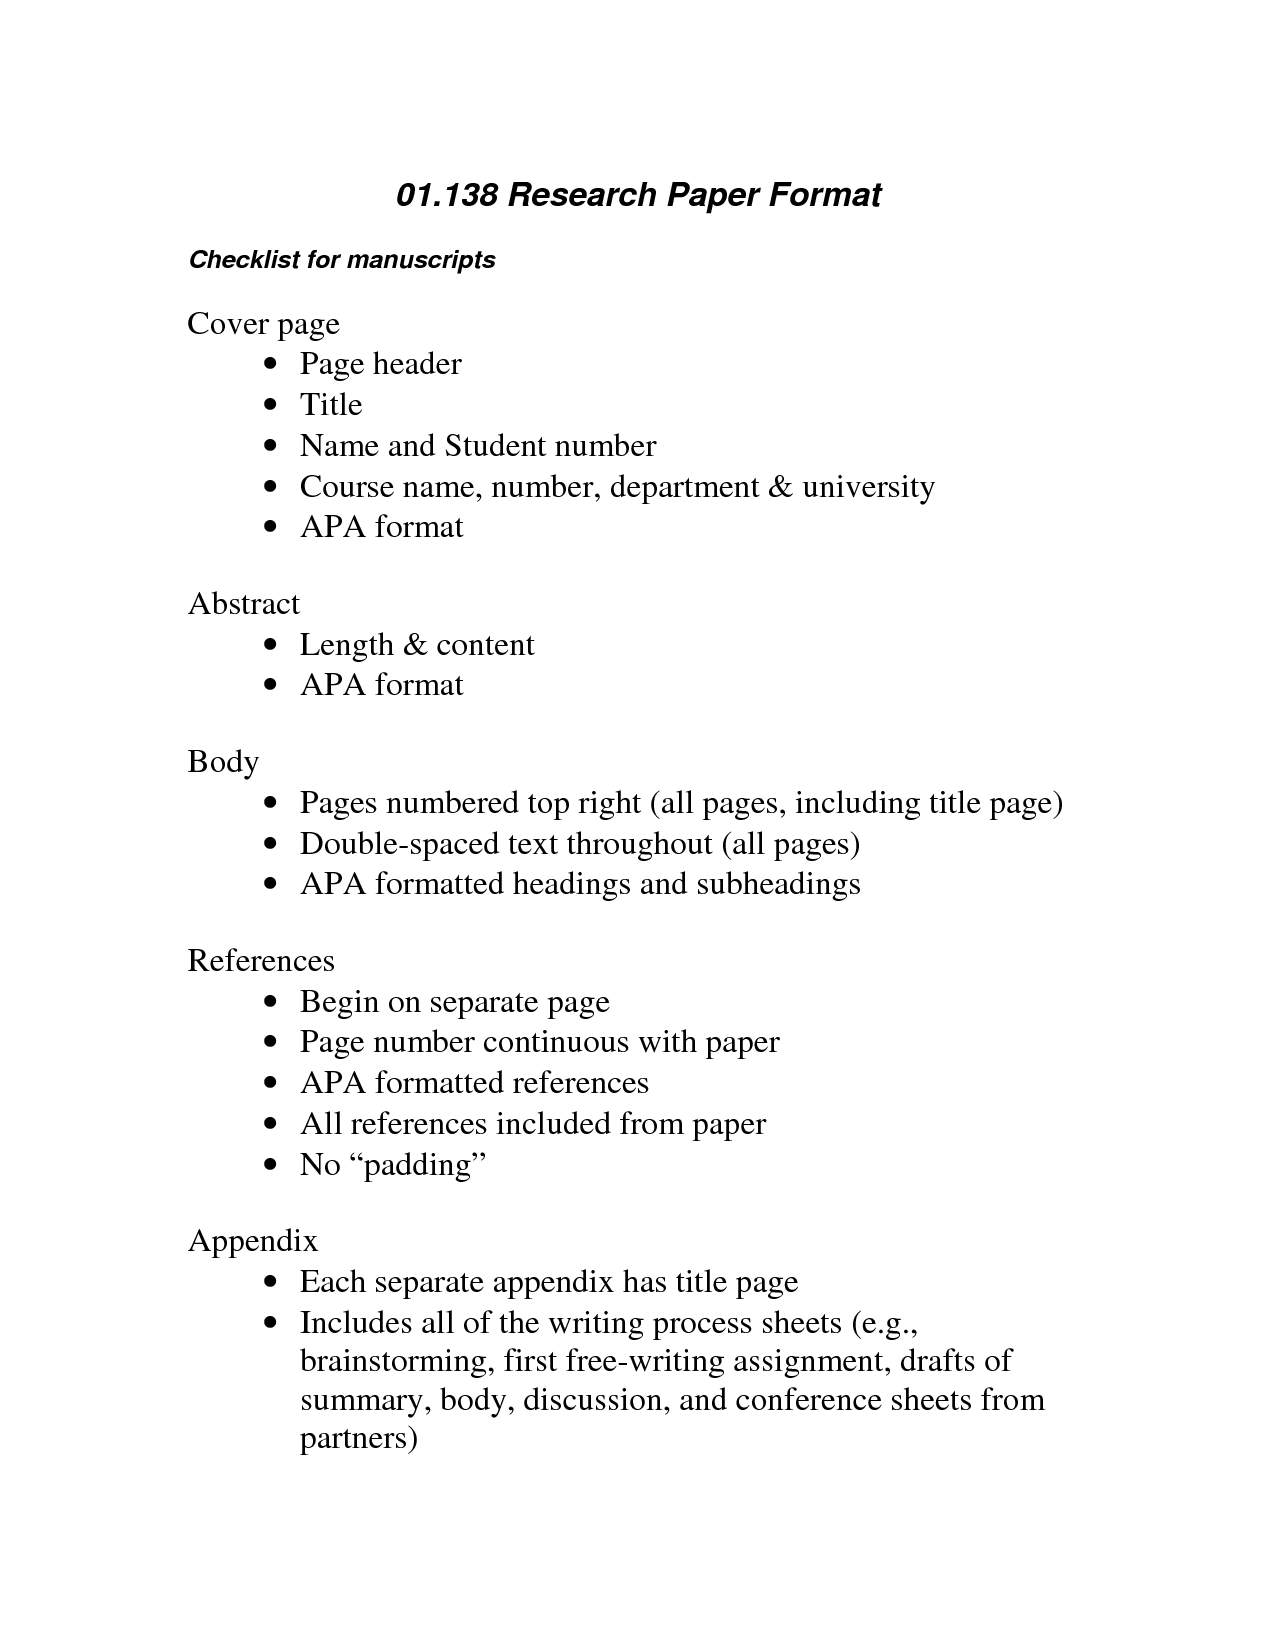 apa format check list scope of work template ib pyp myp dp apa format check list scope of work template